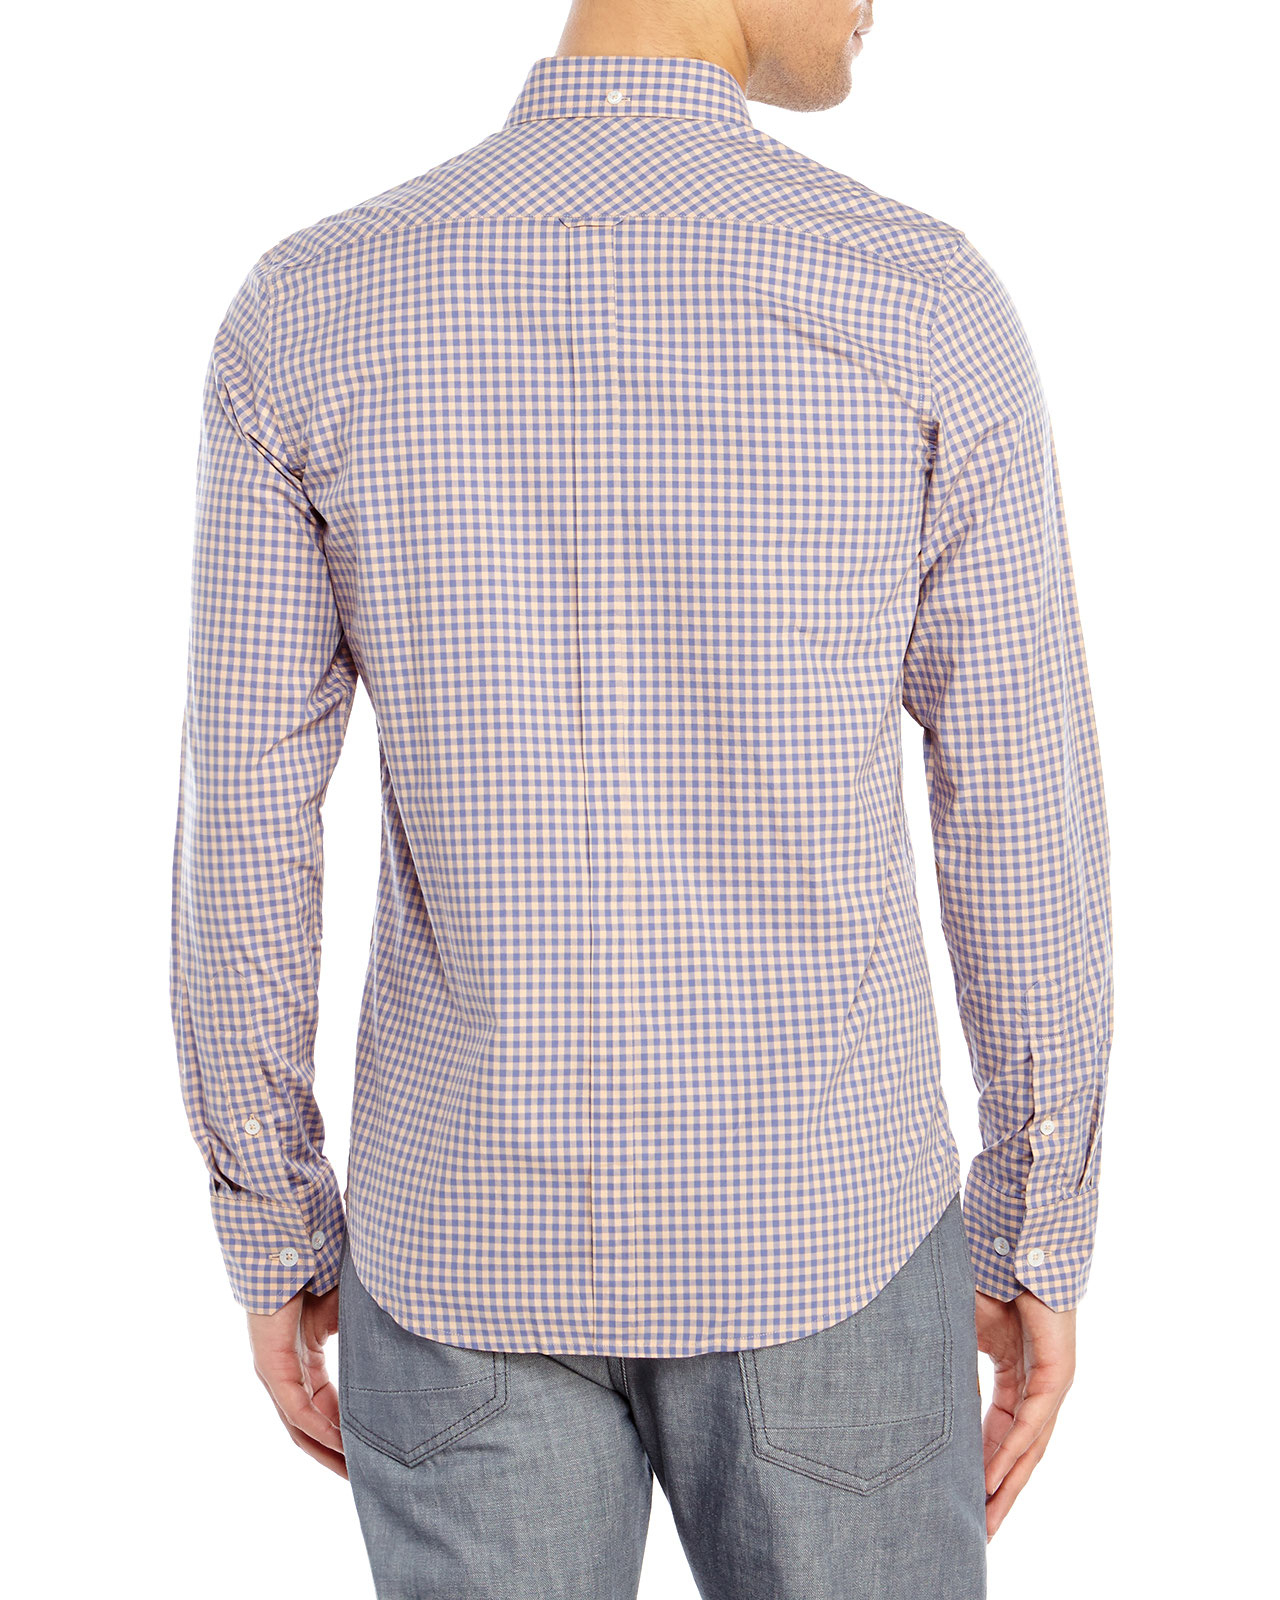 Lyst Ben Sherman Gingham Button Down Shirt In Blue For Men